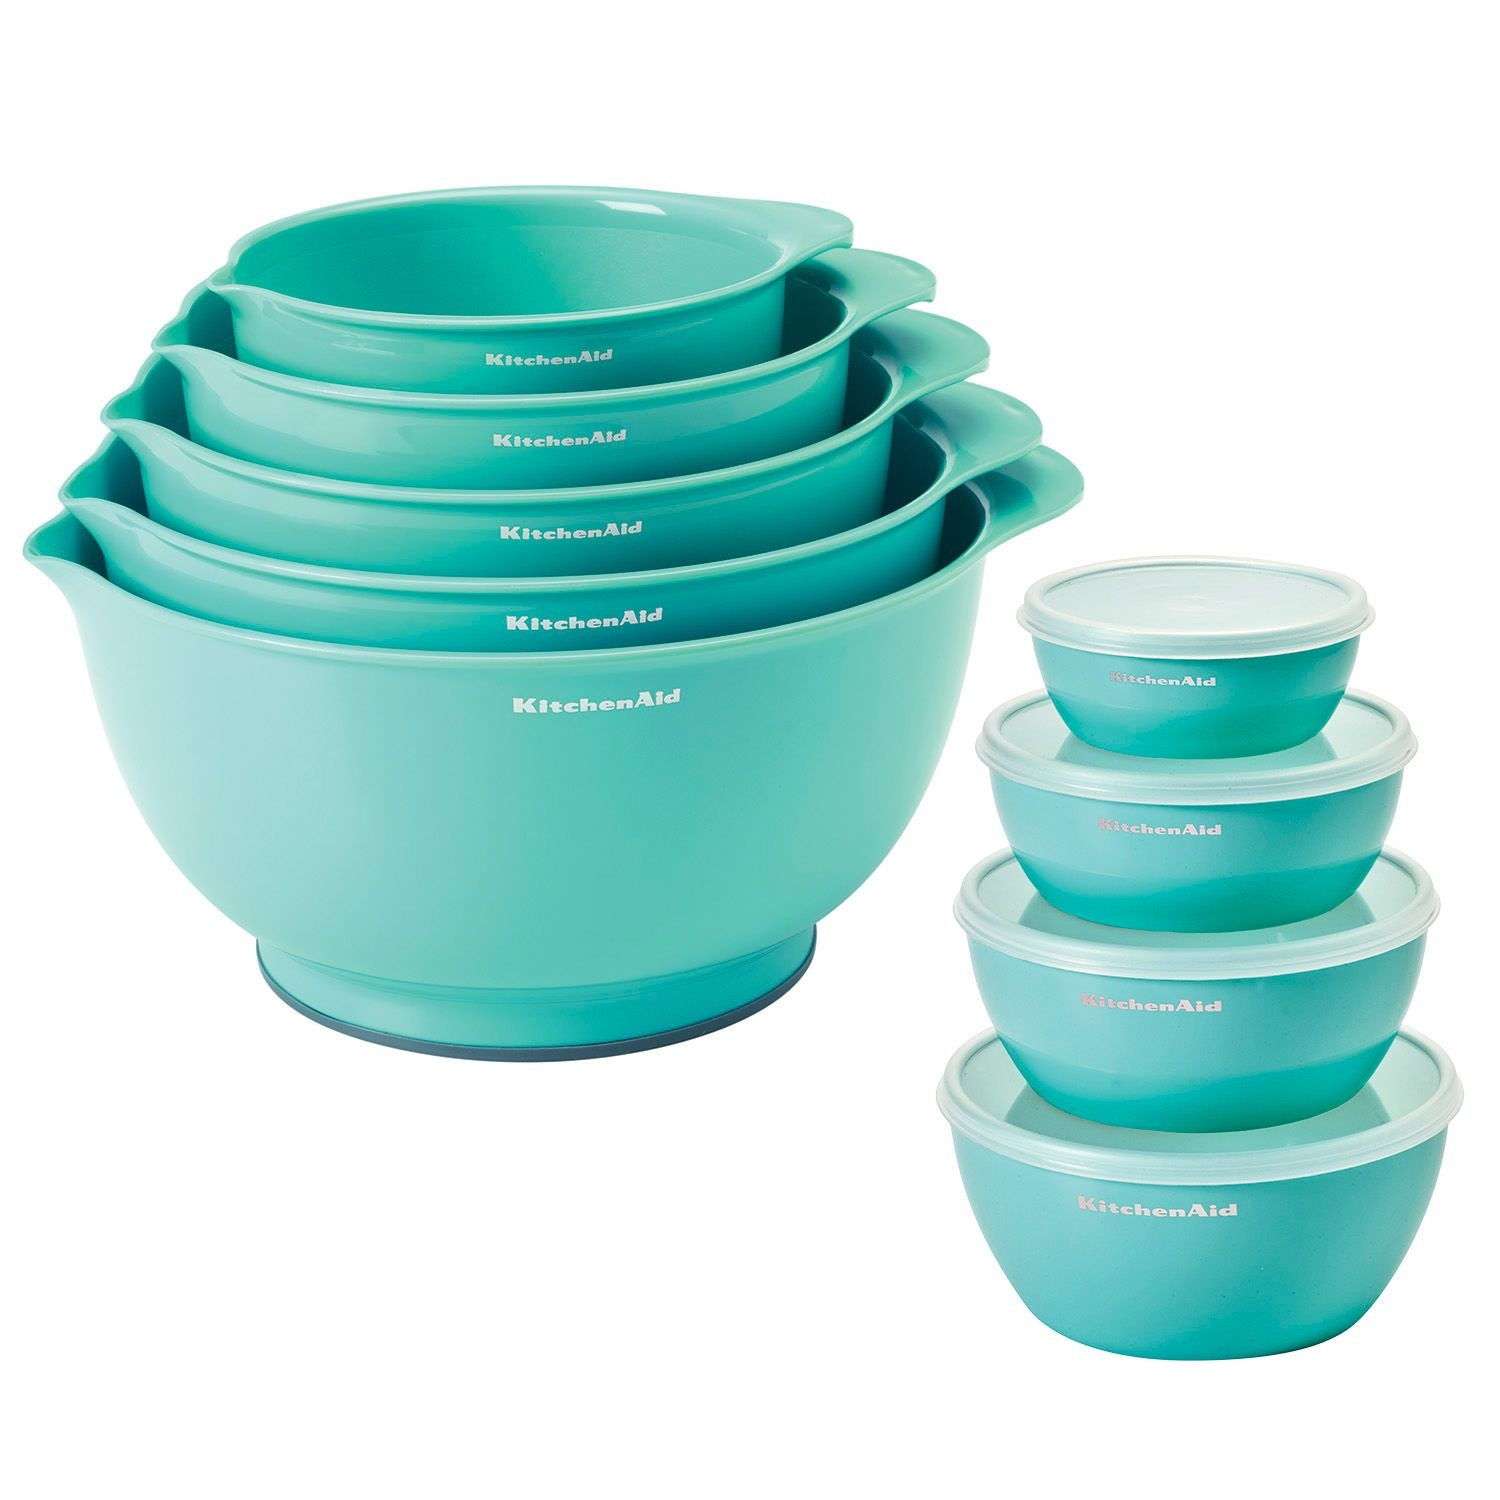 Kitchenaid Mixing Bowl Sets